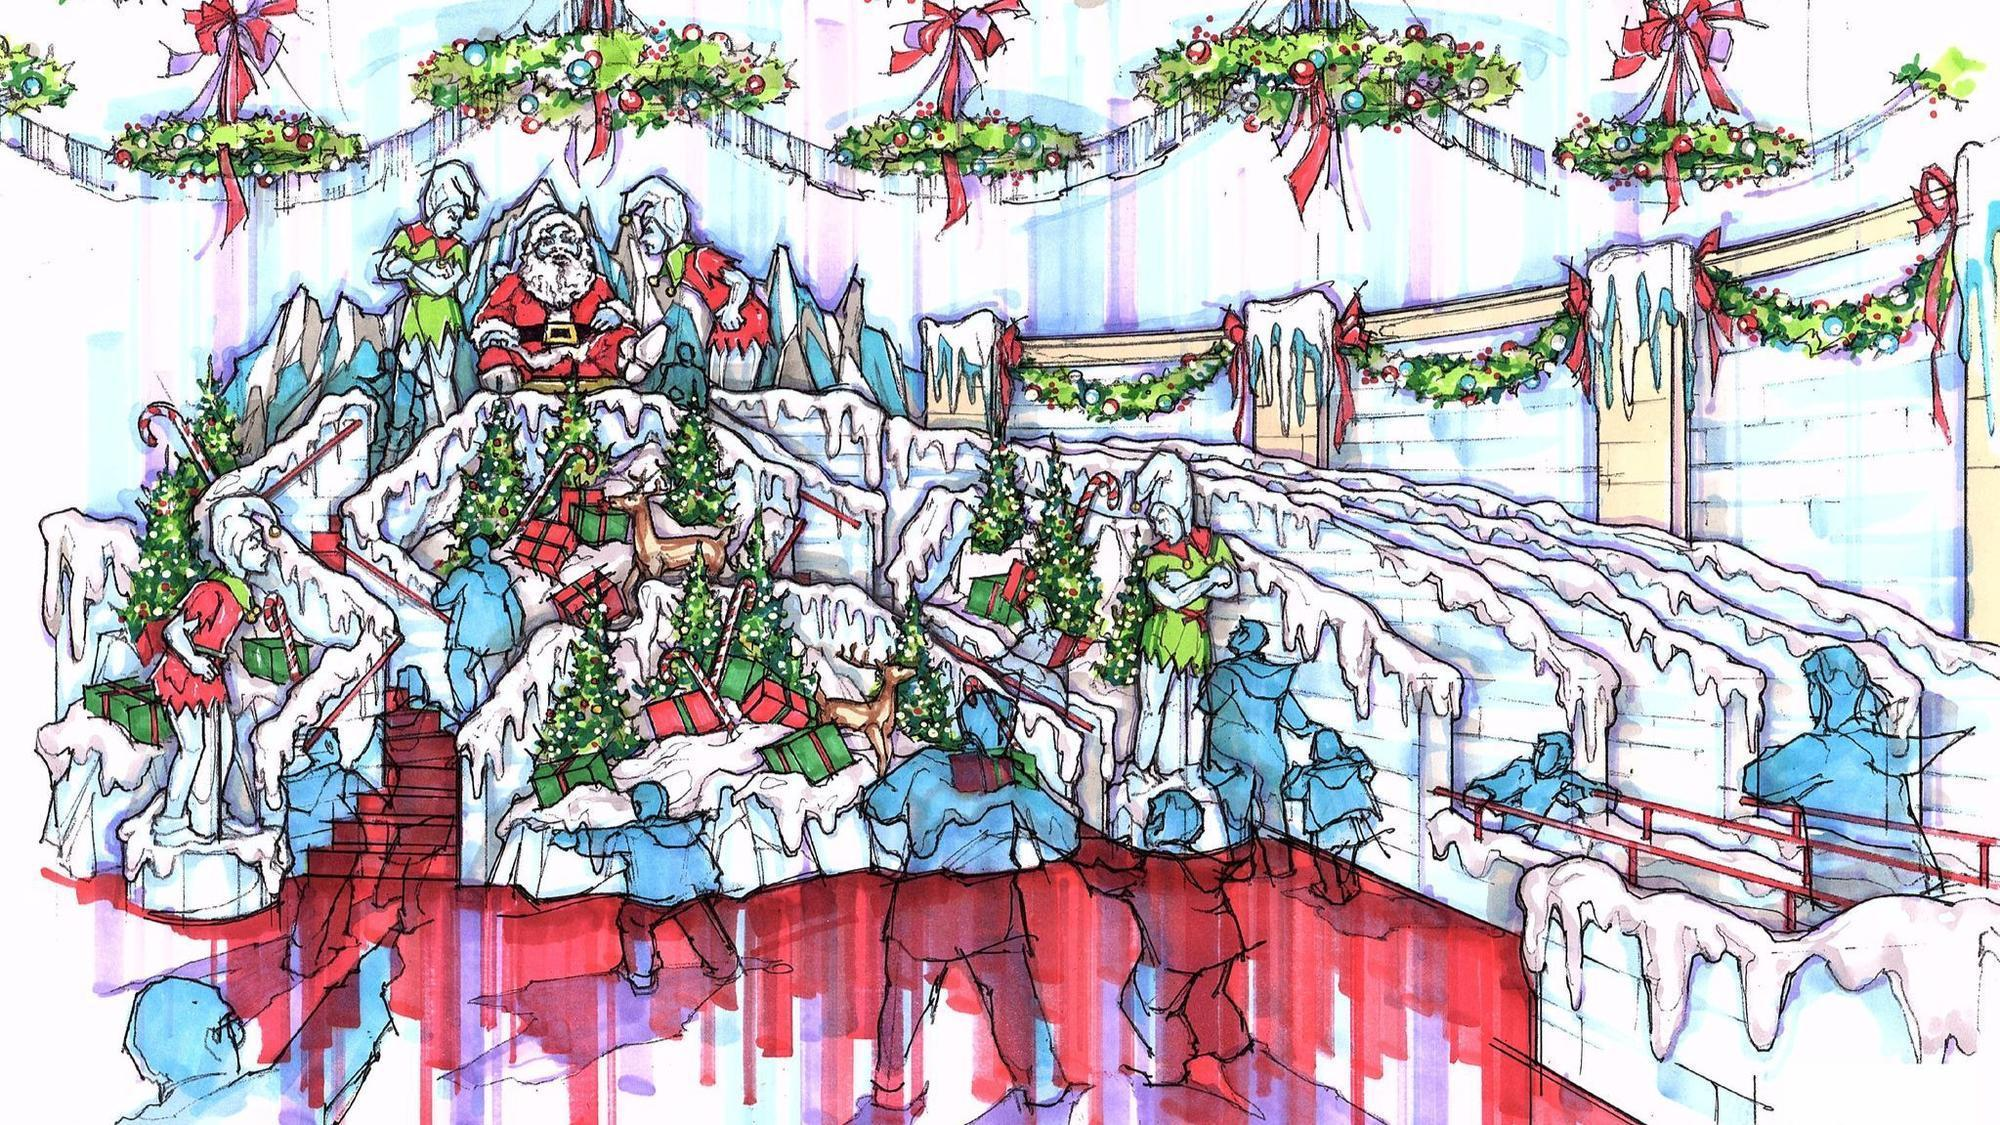 gaylord palms to tell a christmas story theme in ice orlando sentinel - What Year Did A Christmas Story Take Place